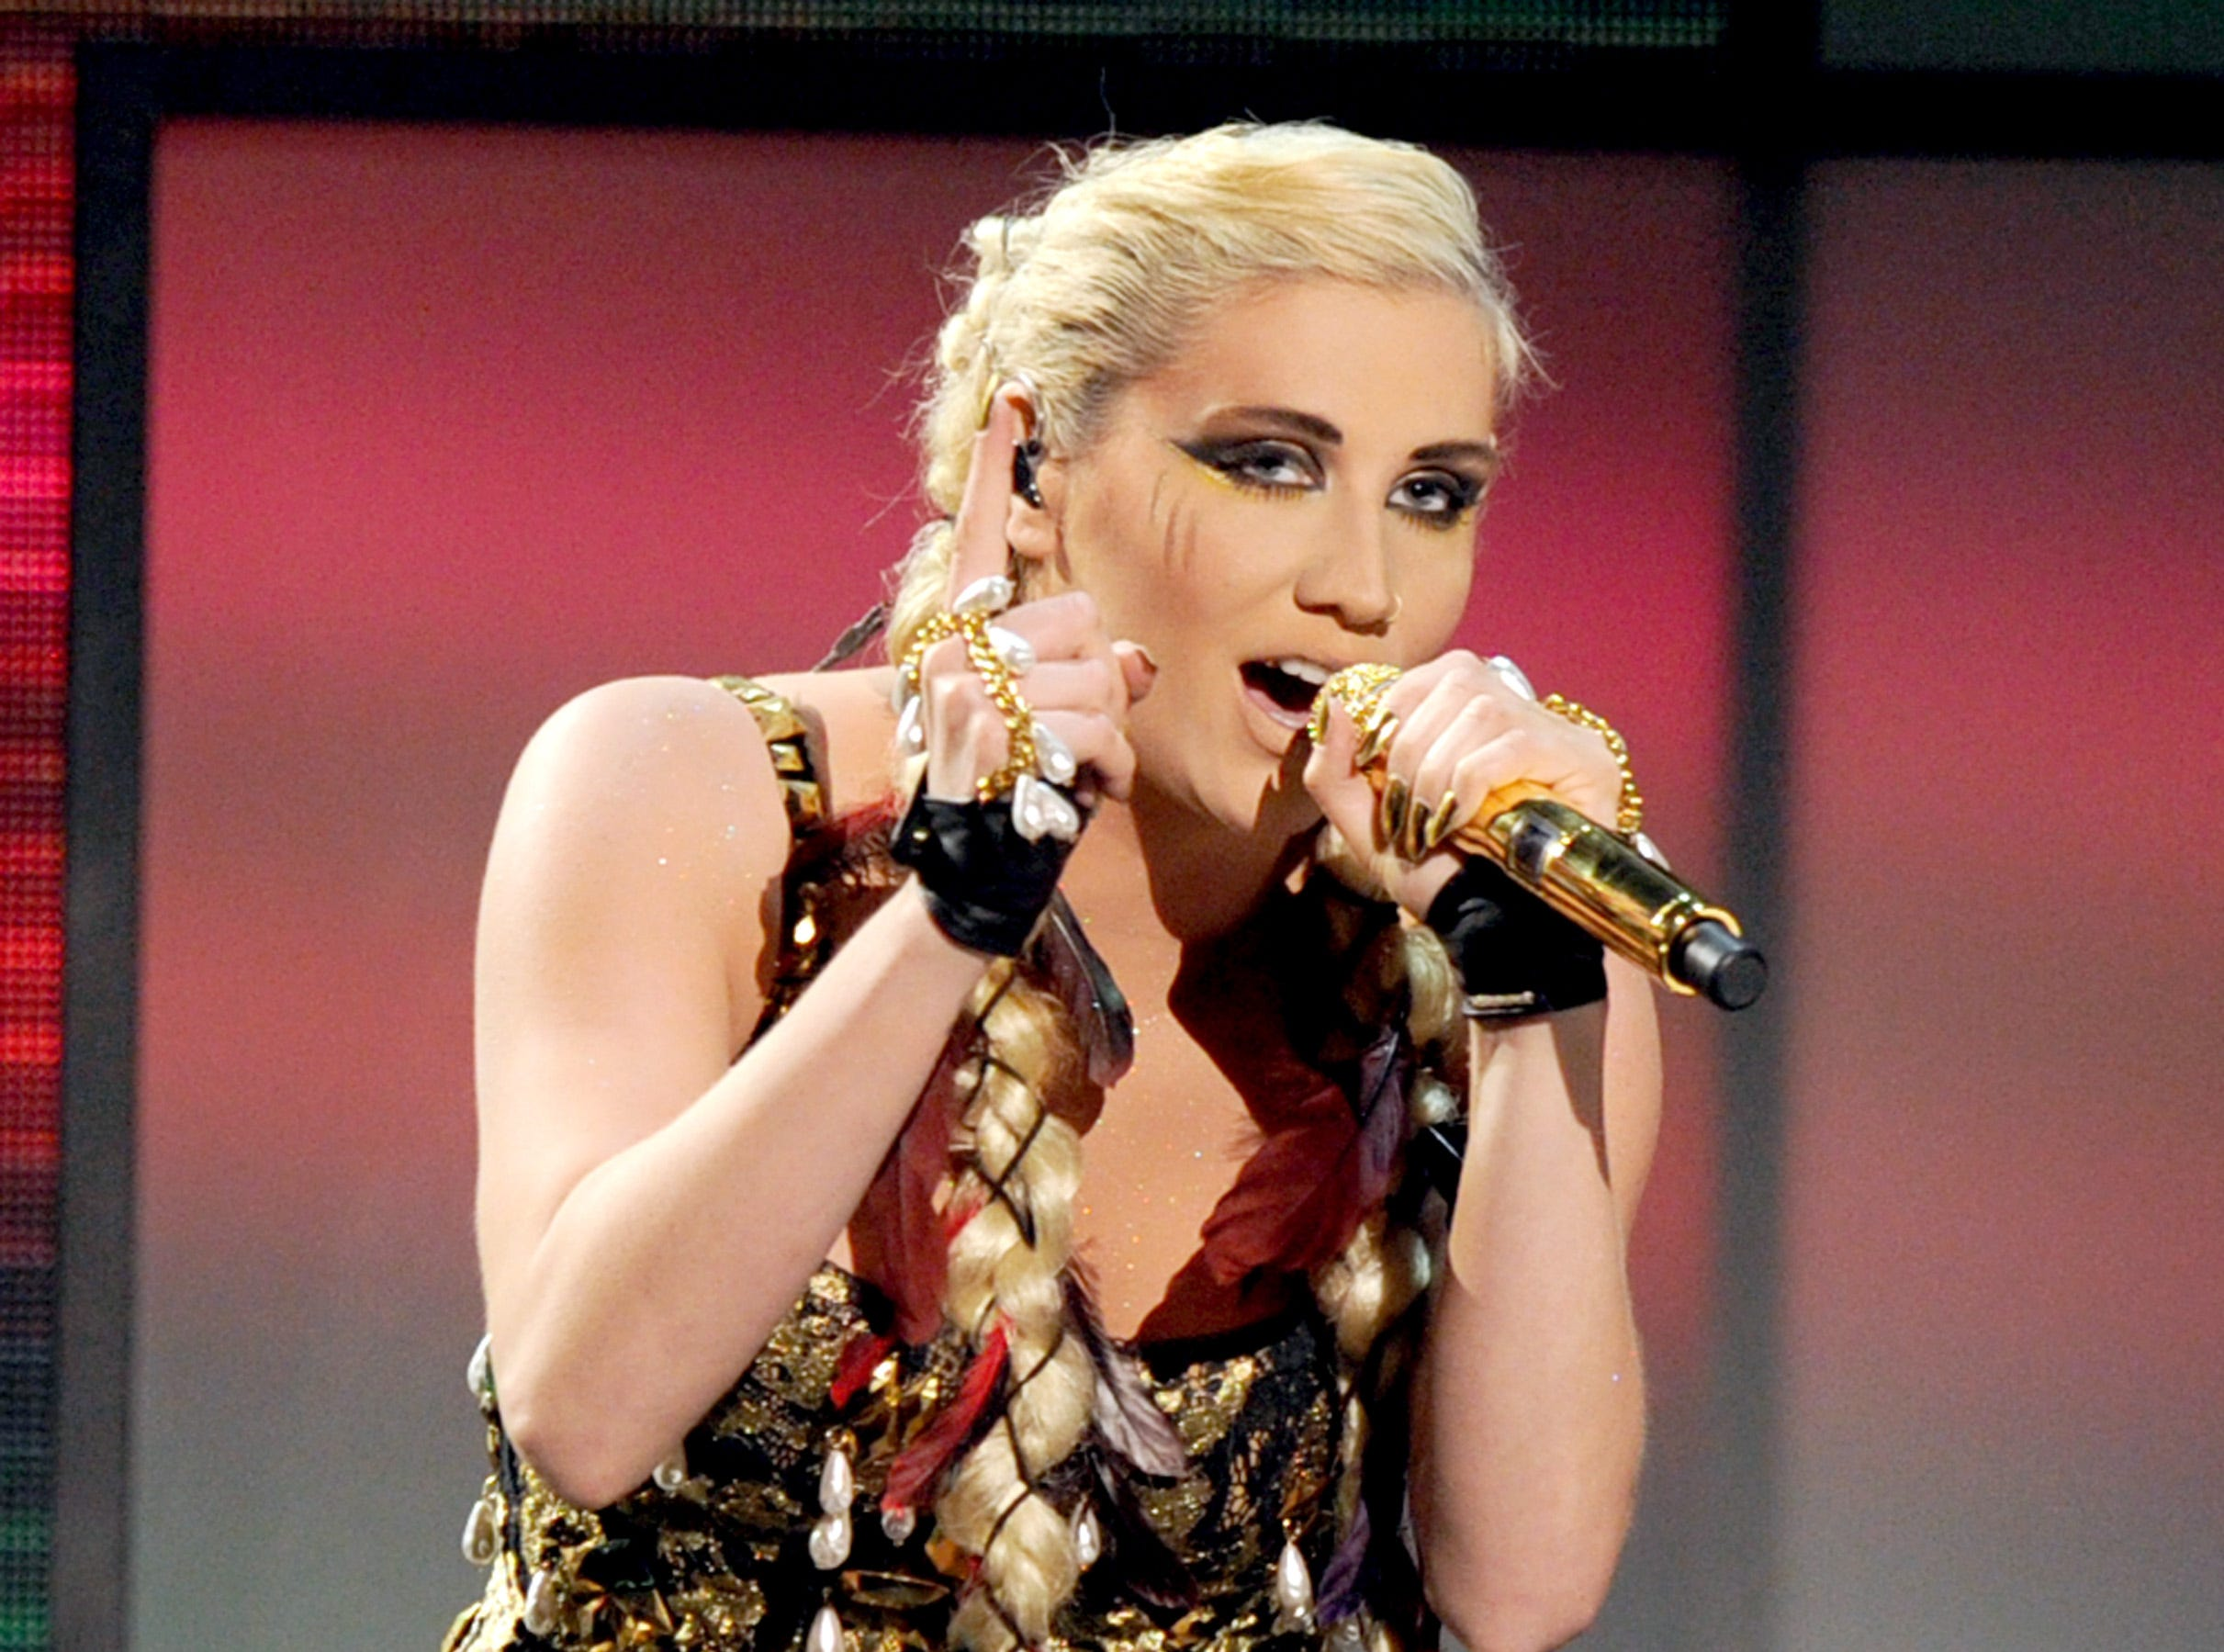 Kesha performs onstage during the 2012 American Music Awards on November 18, 2012 in Los Angeles, California.